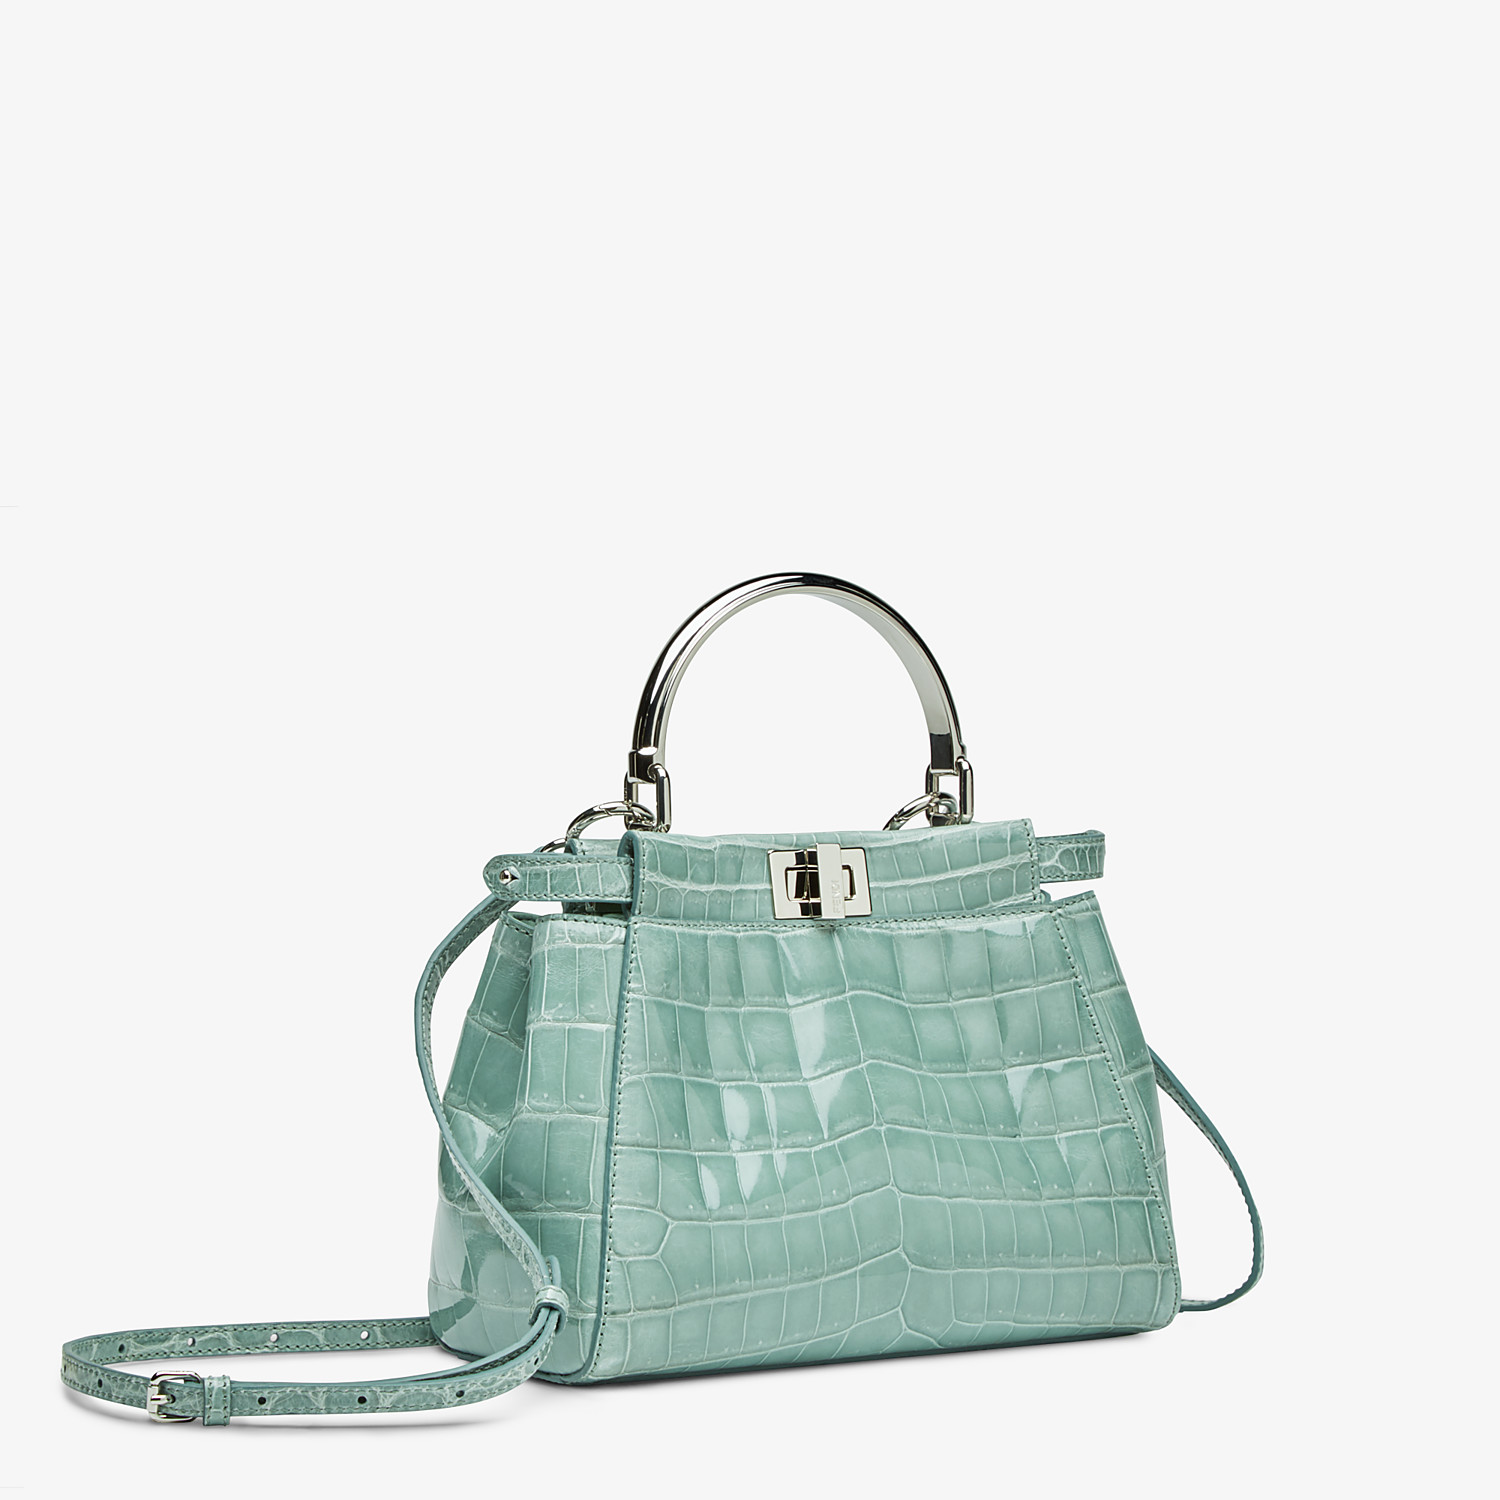 FENDI PEEKABOO ICONIC MINI - handbag in aqua green crocodile - view 2 detail